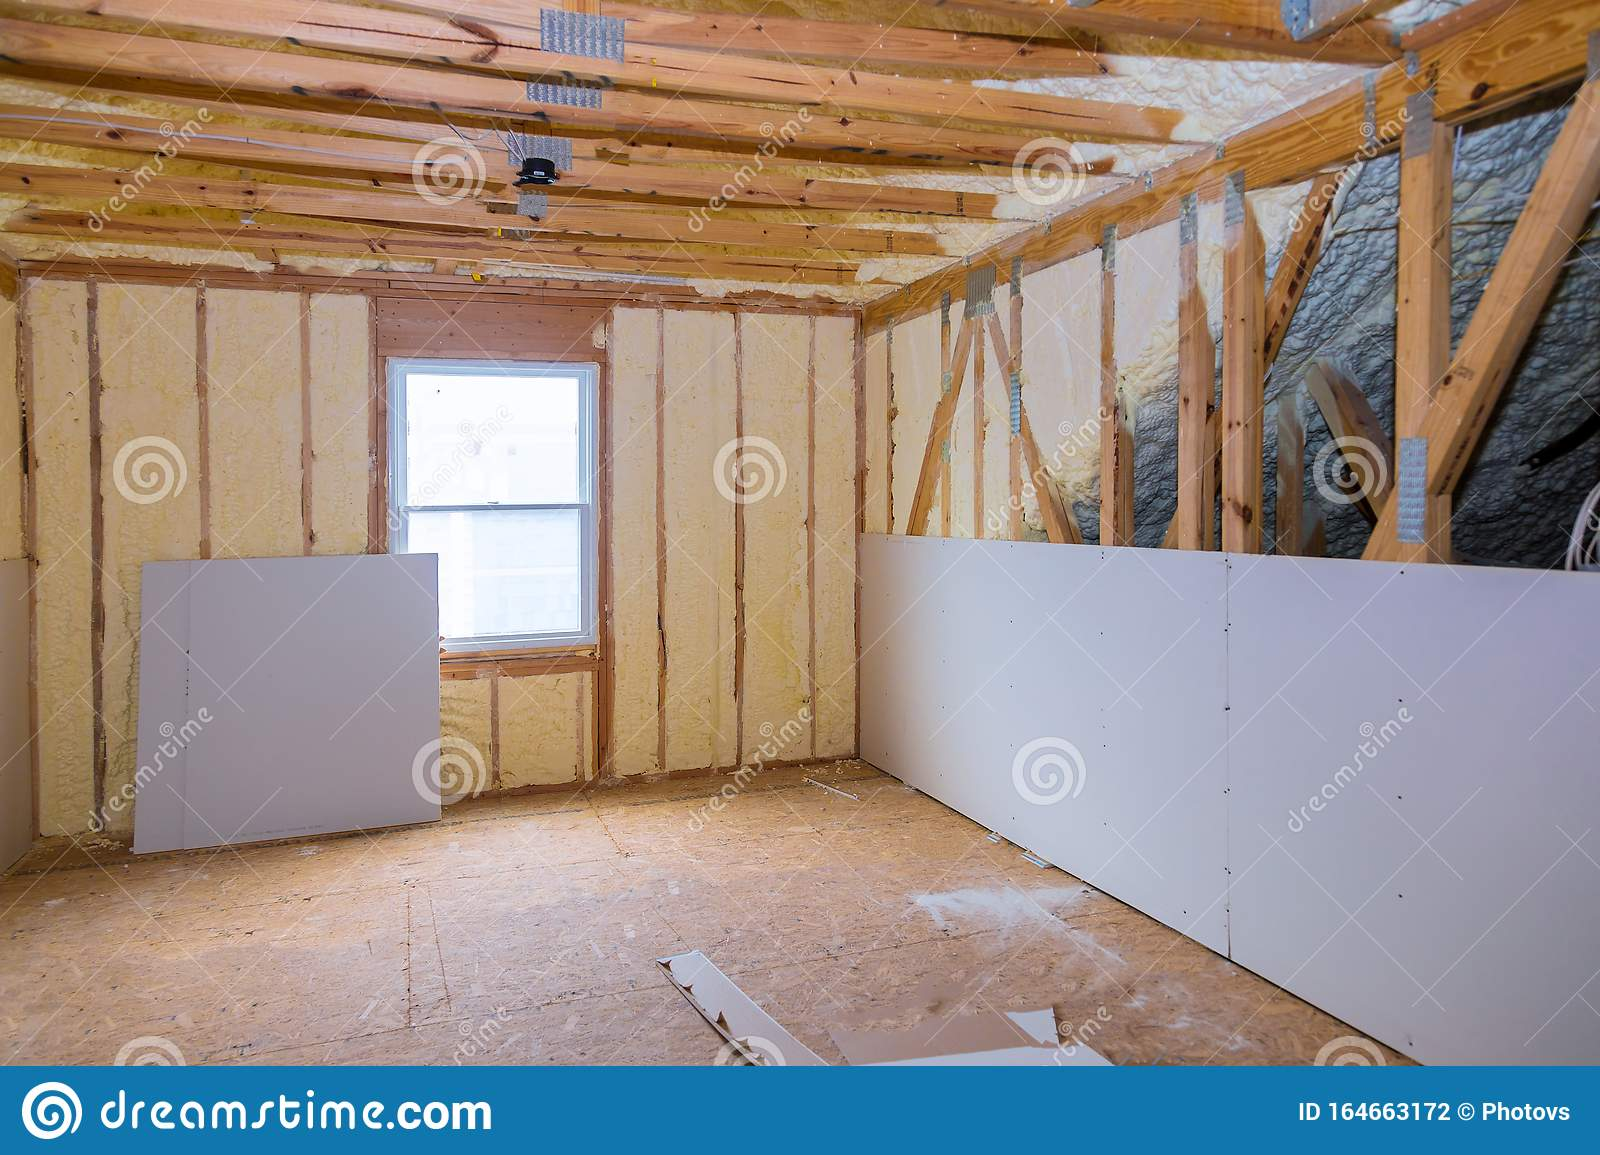 Insulation Of Thermal Insulation Attic With Cold Barrier And Insulation Material Stock Photo Image Of Thermal Inside 164663172